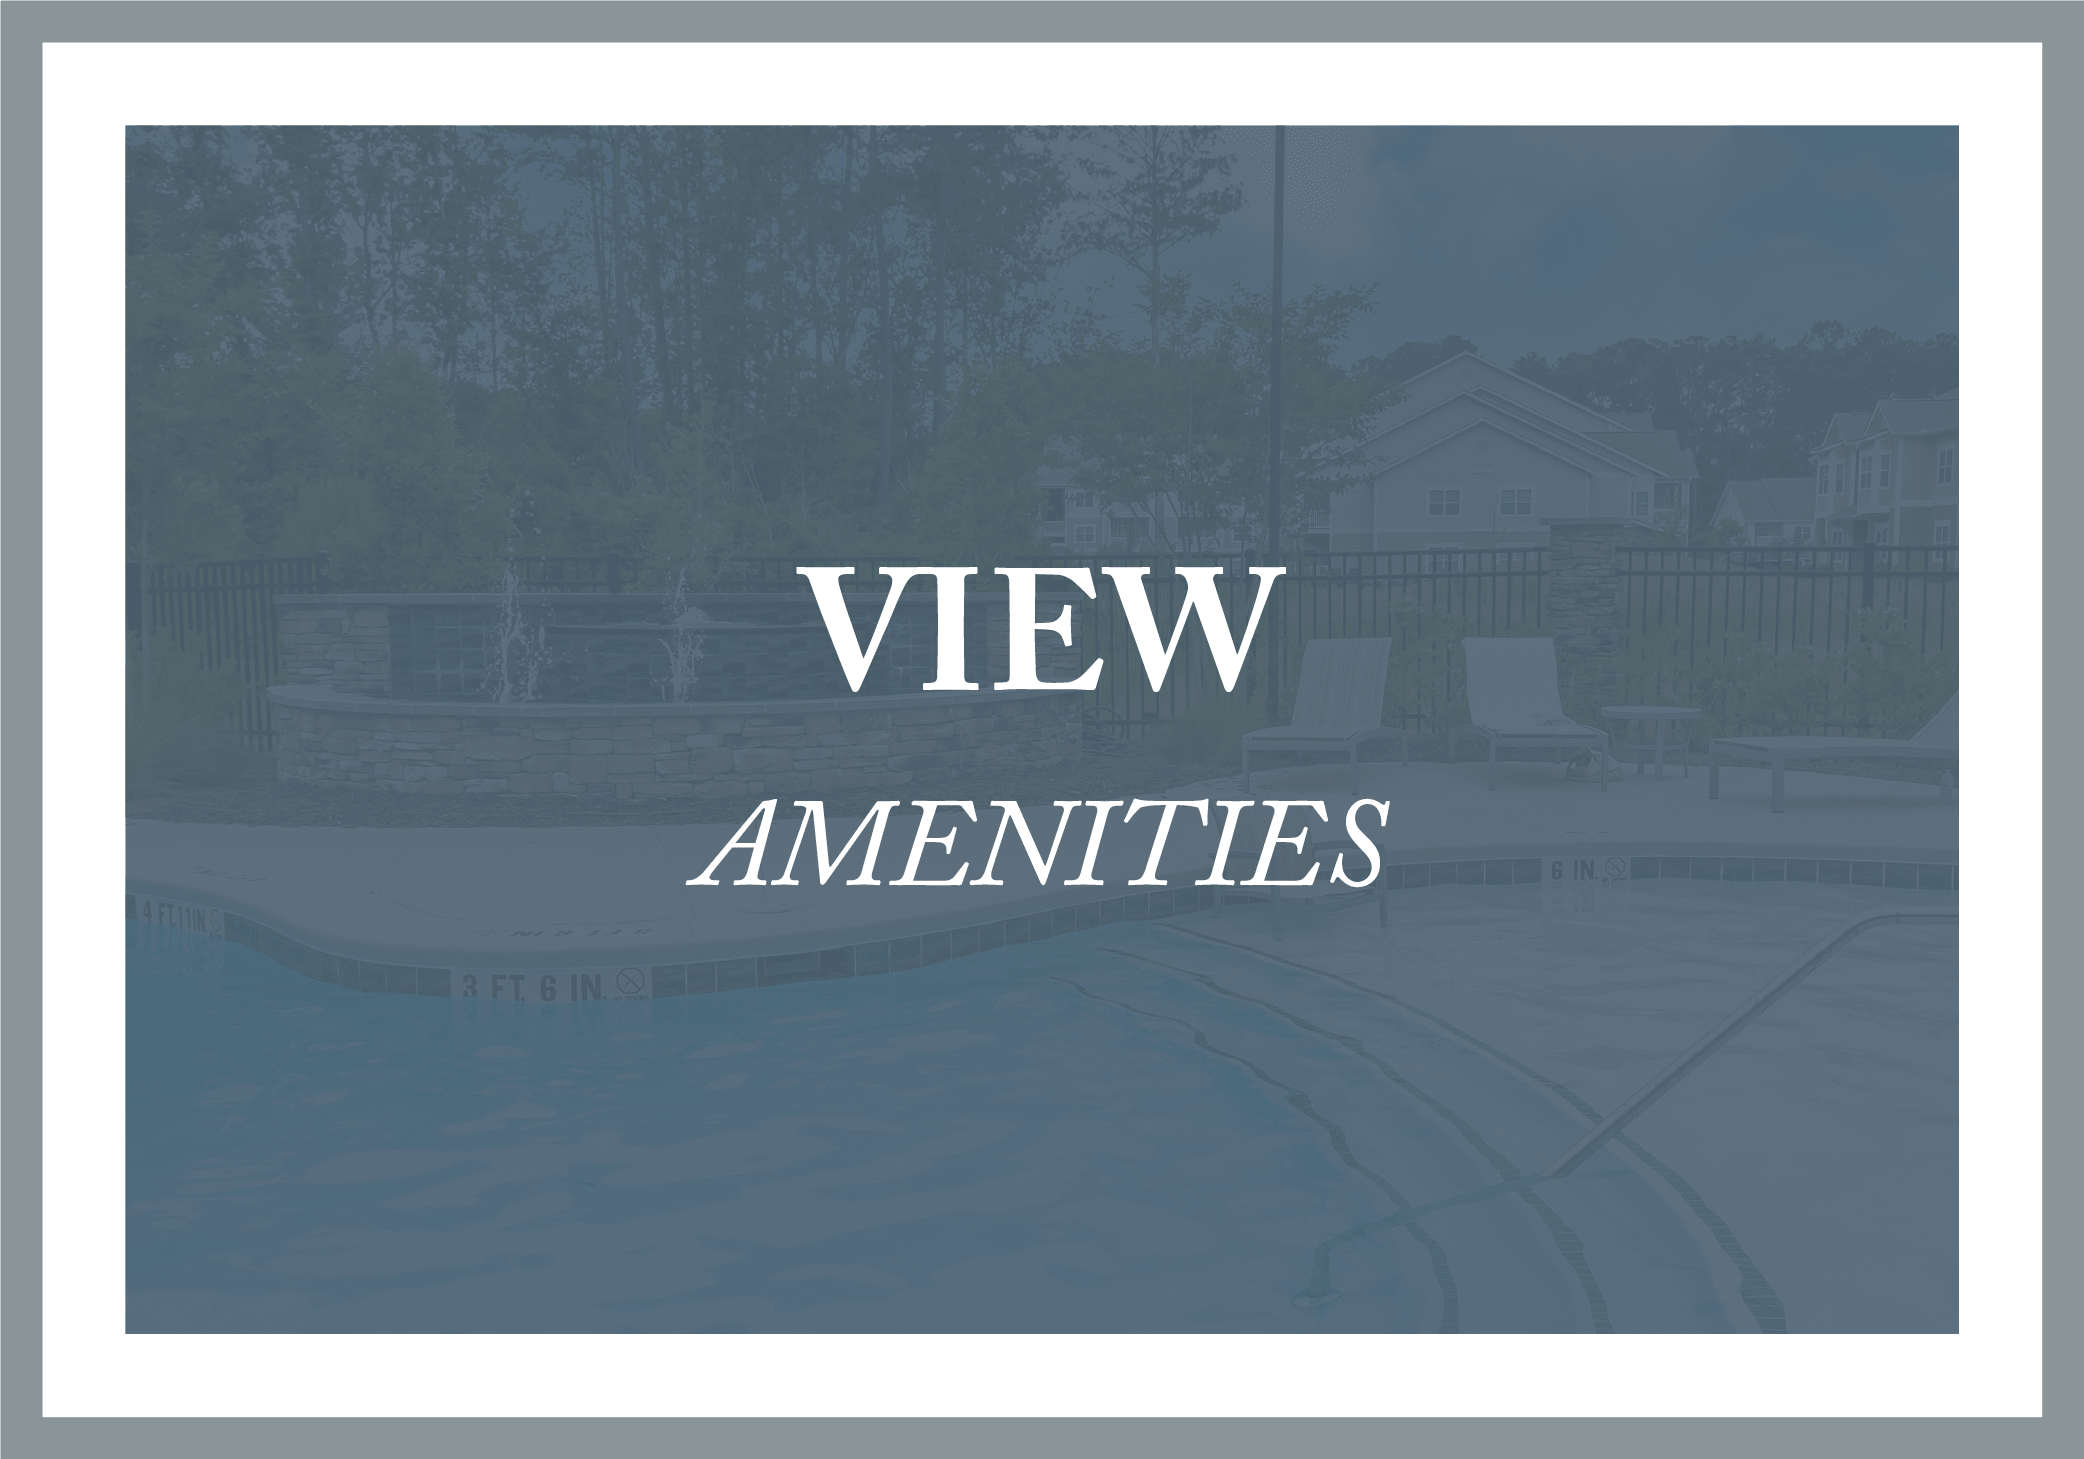 View Lullwater at Bass' amenities in Macon, Georgia